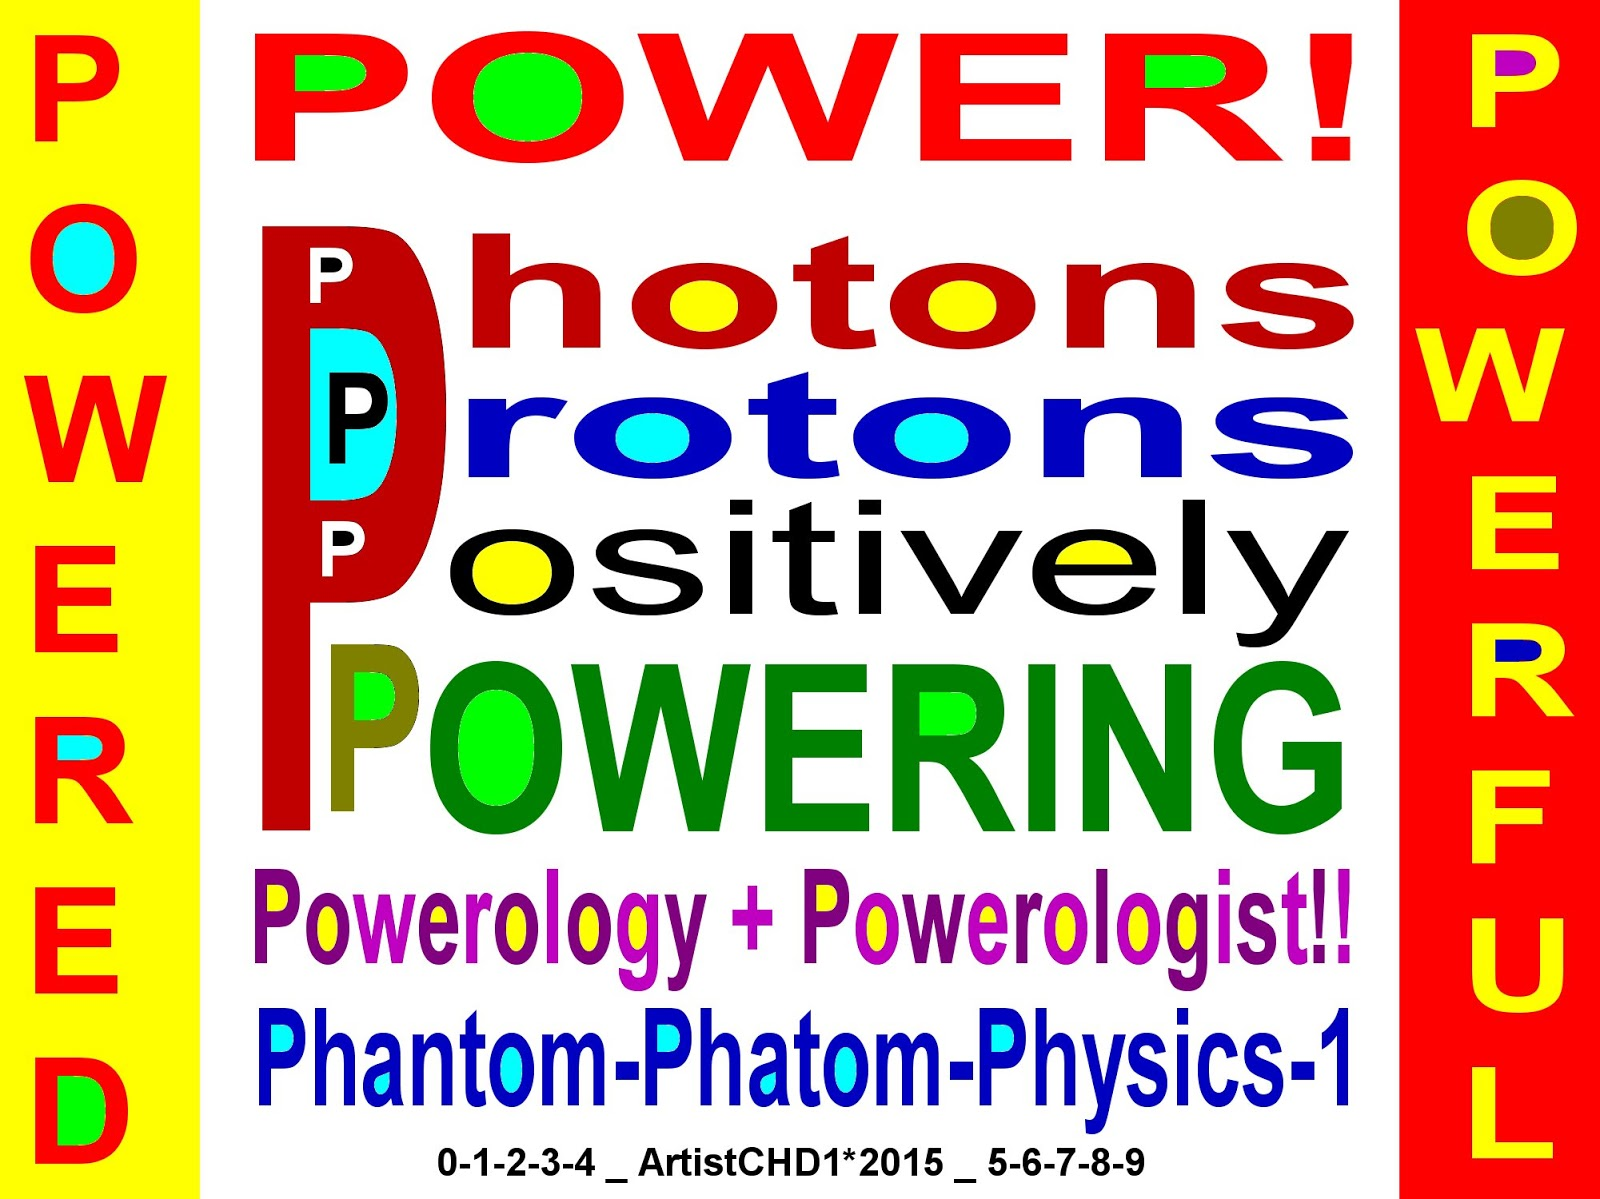 Color Kingdom New World Creative Arts Alternating Current Of A Plasma Display Diagram Poster Zazzle Kongpop U Yen Solar System Formation Quantum Vibration And Natural Disasters Eu2015 Https Youtubecom Watchvbobpzrpy7l4